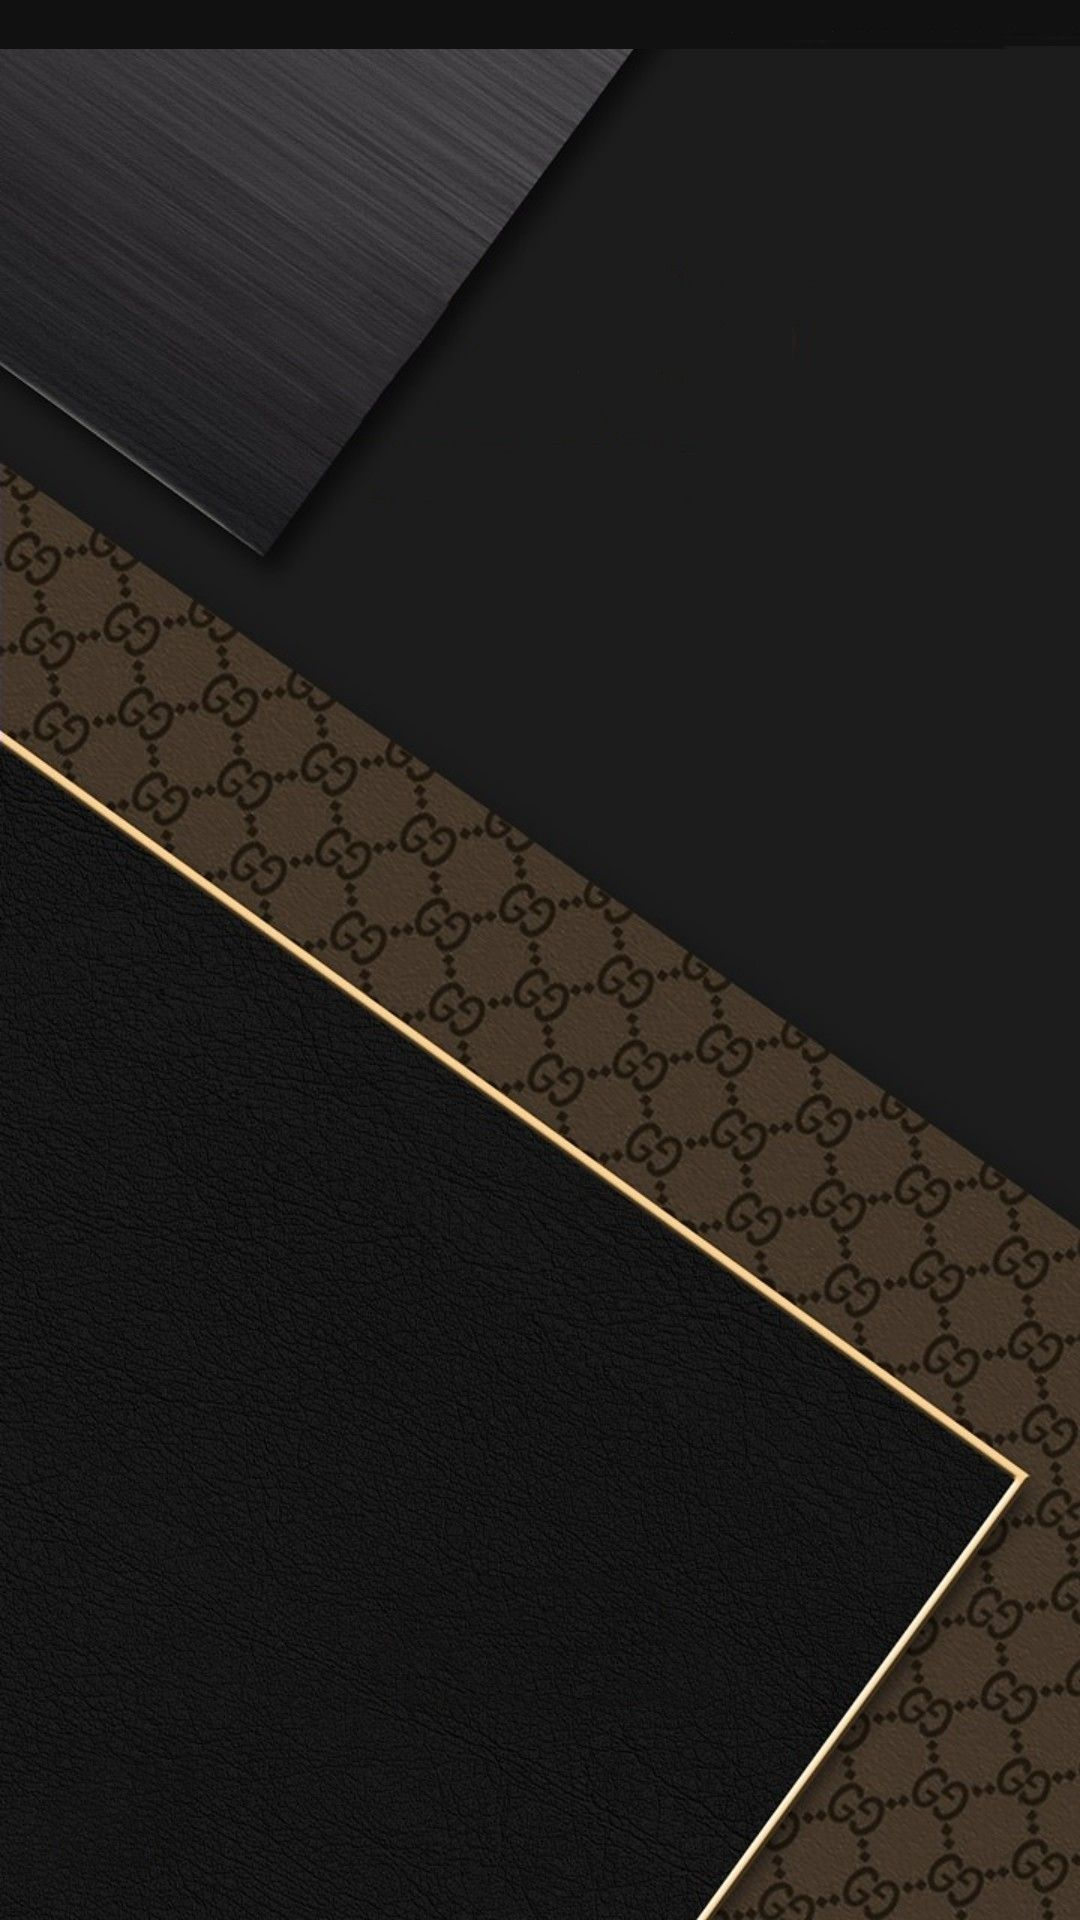 Pin By Wurth It On Android Wallpapers Grey And Gold Wallpaper Gold Textured Wallpaper Gold Wallpaper